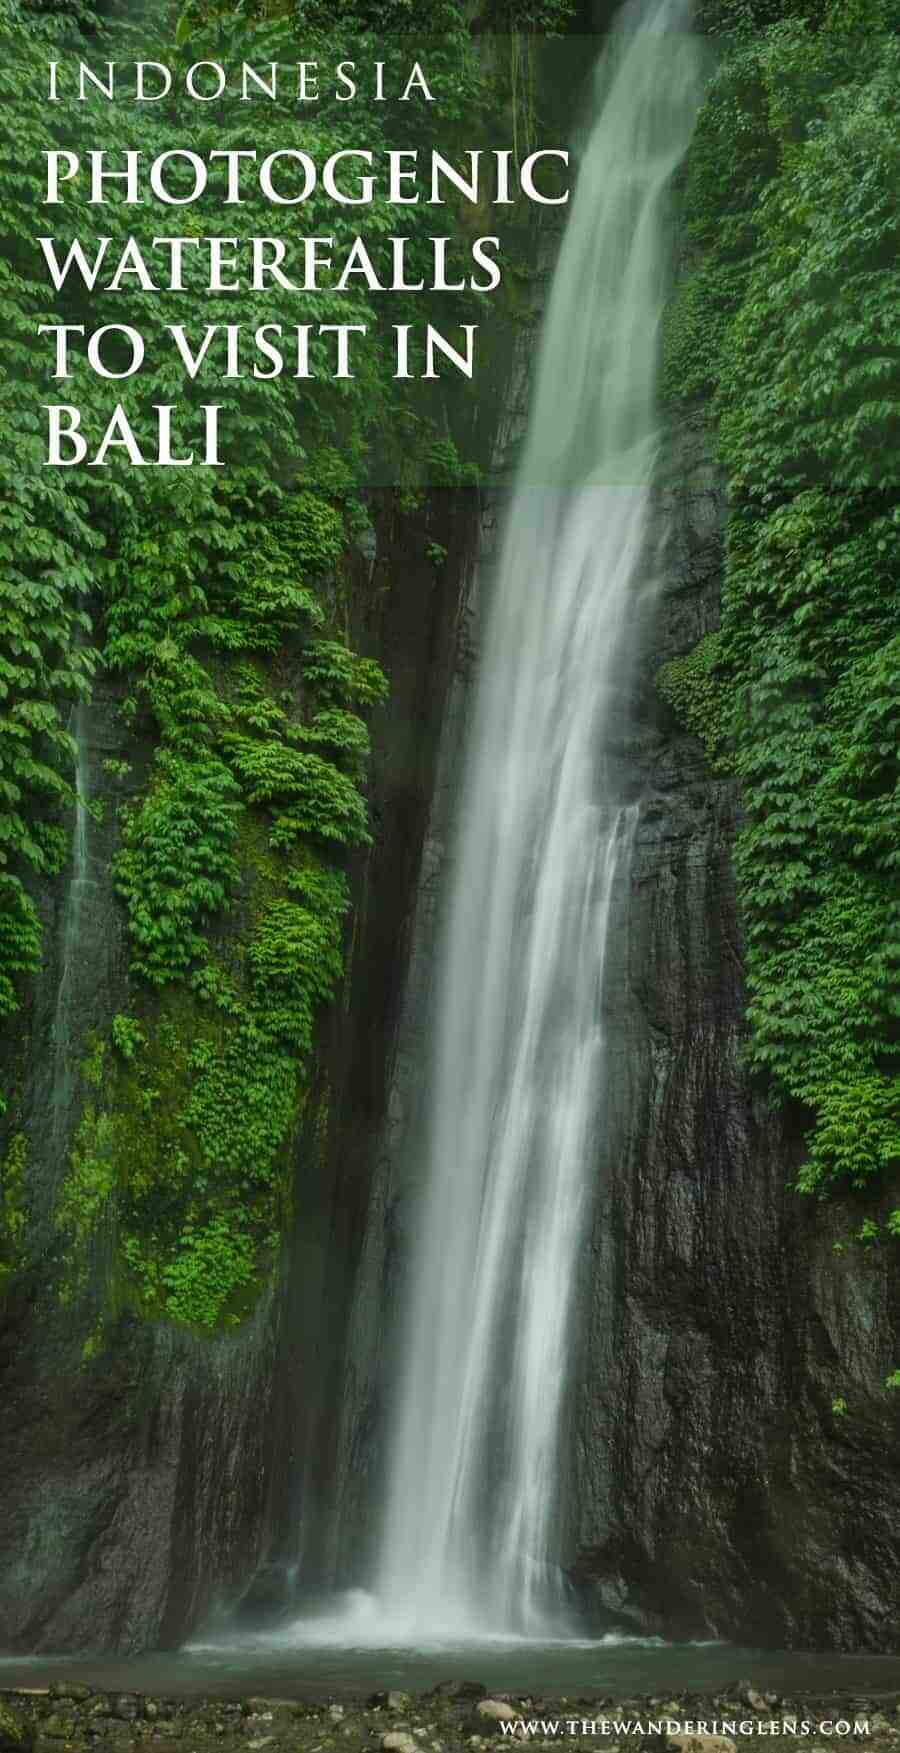 Photogenic waterfalls to visit in Bali, Indonesia. A guide to some of the most beautiful waterfalls located in the north of Bali, just a two hours drive from Ubud.